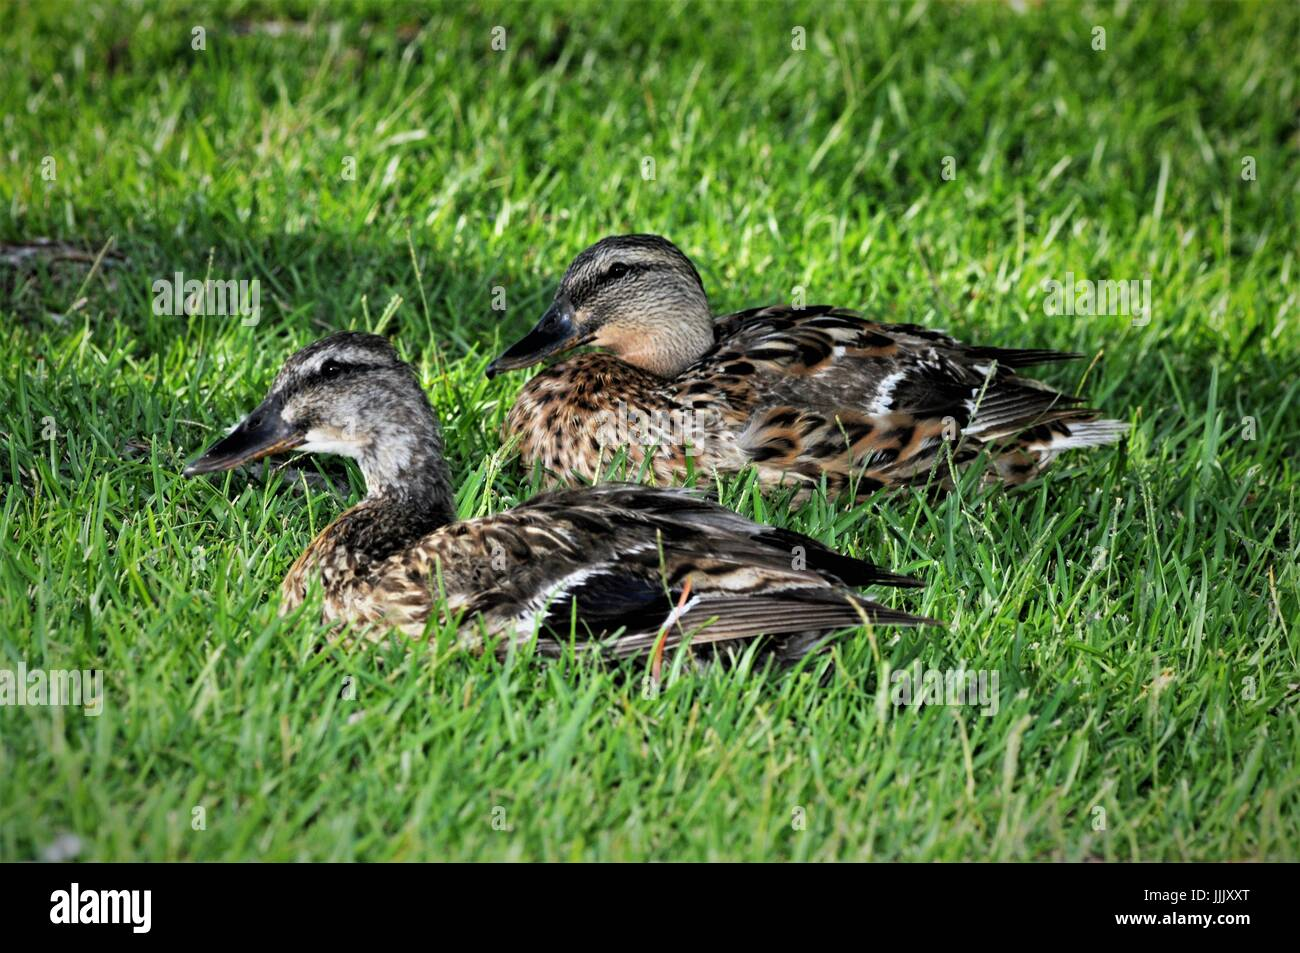 Mallard hens resting in the grass - Stock Image